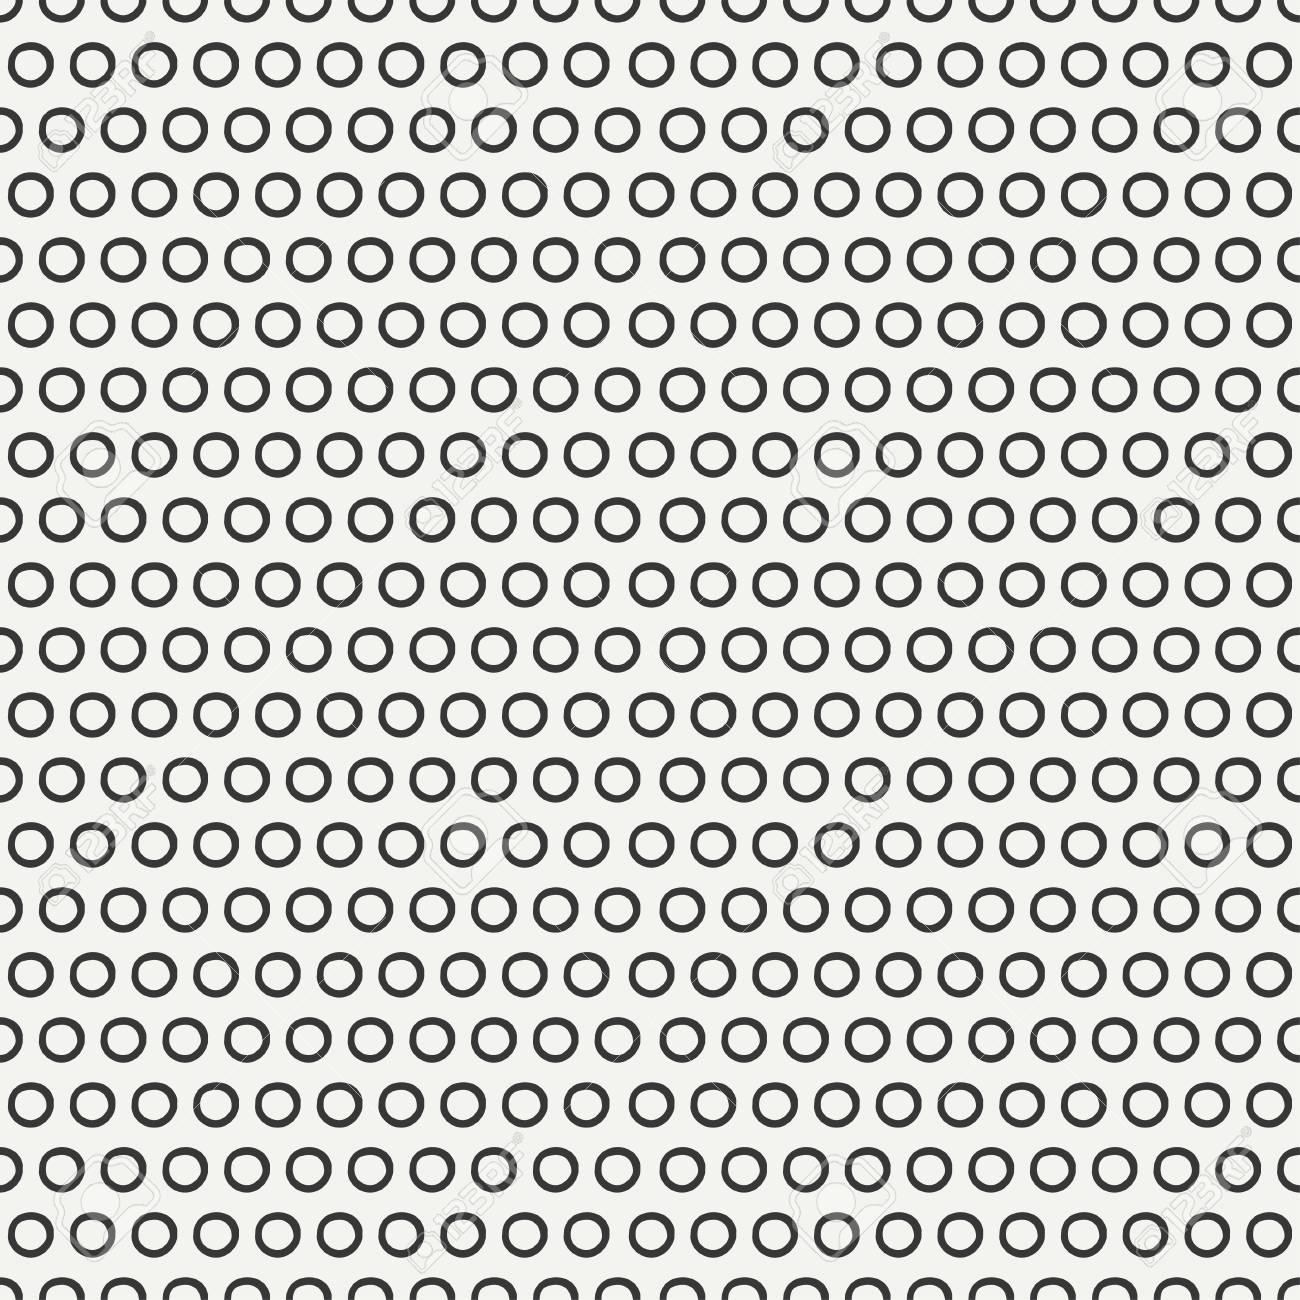 Geometric Abstract Seamless Pattern With Hand Drawn Circles